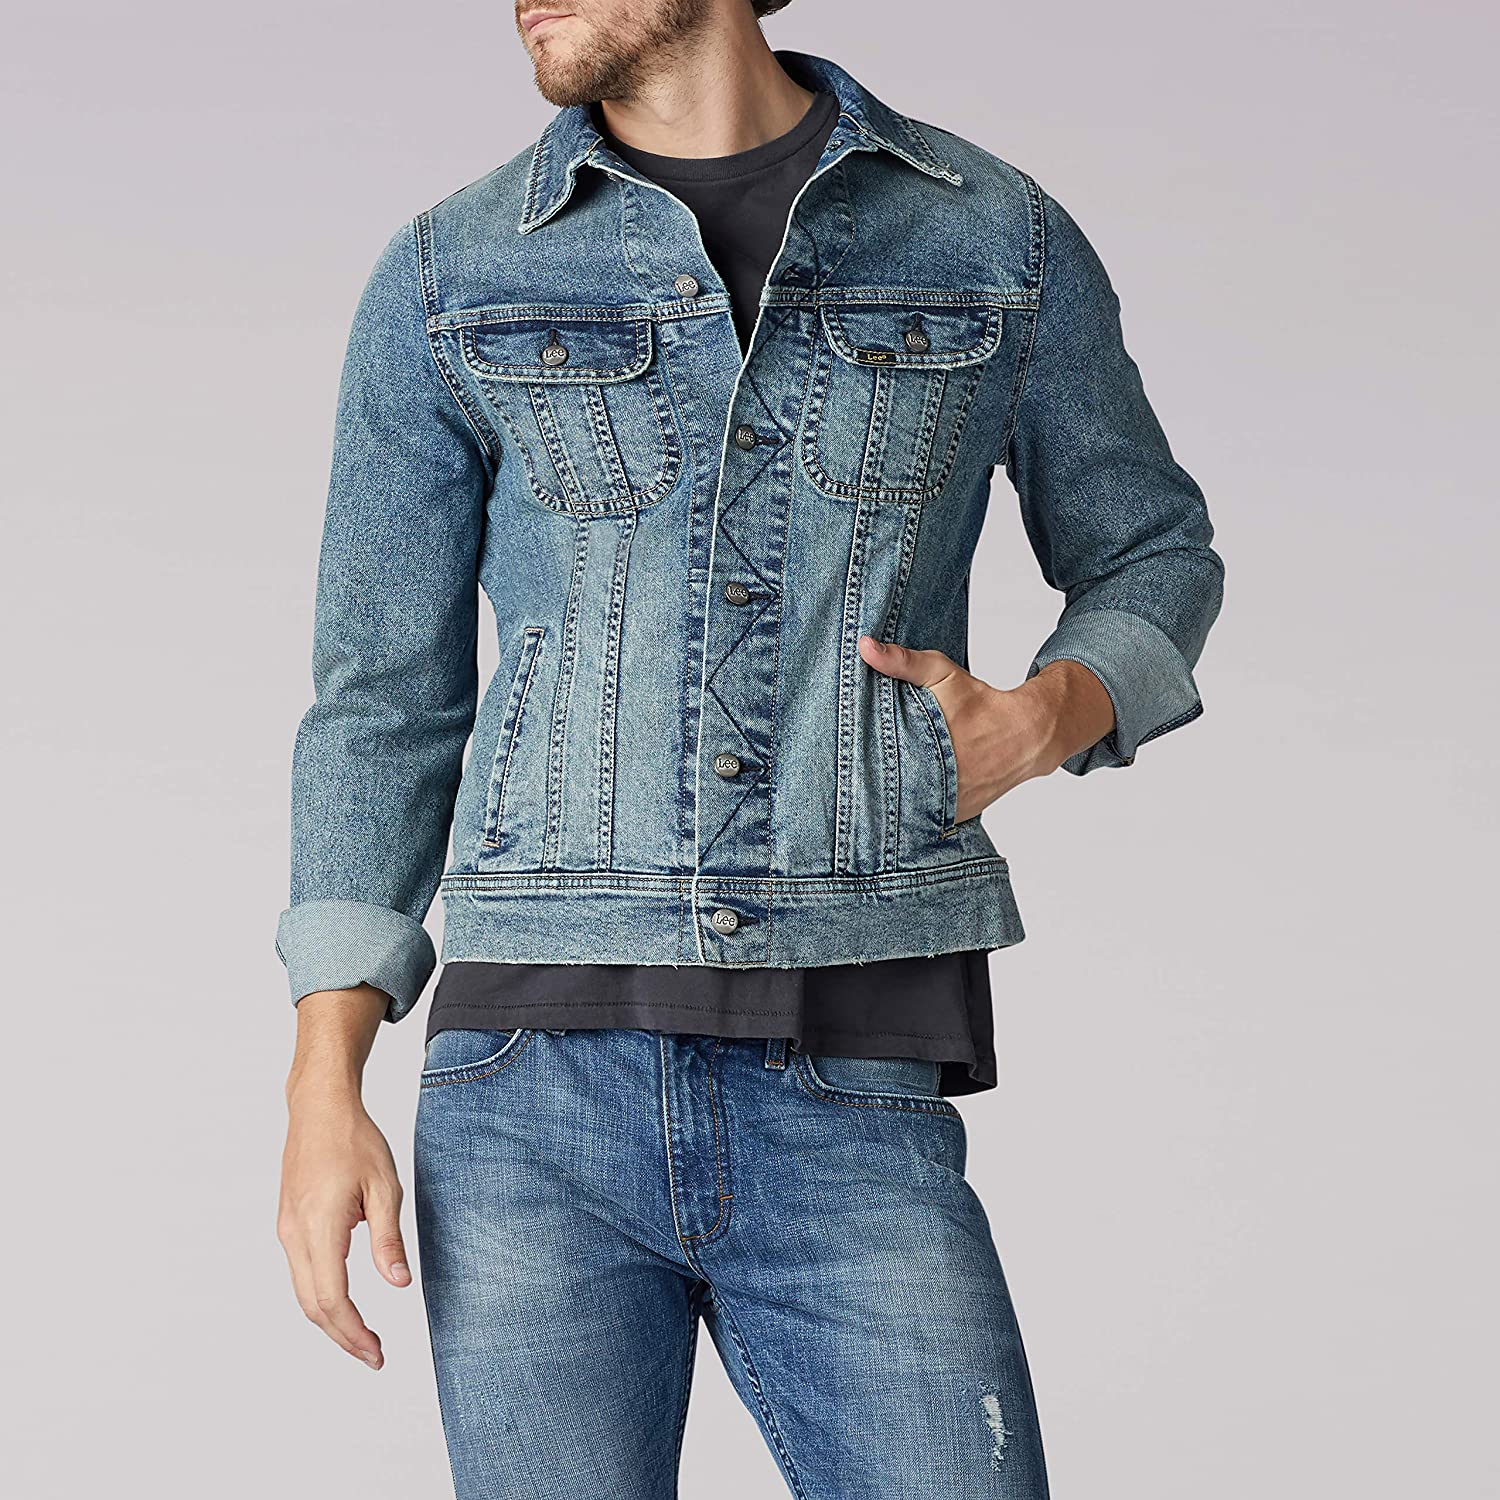 Lee Mens Denim Jacket